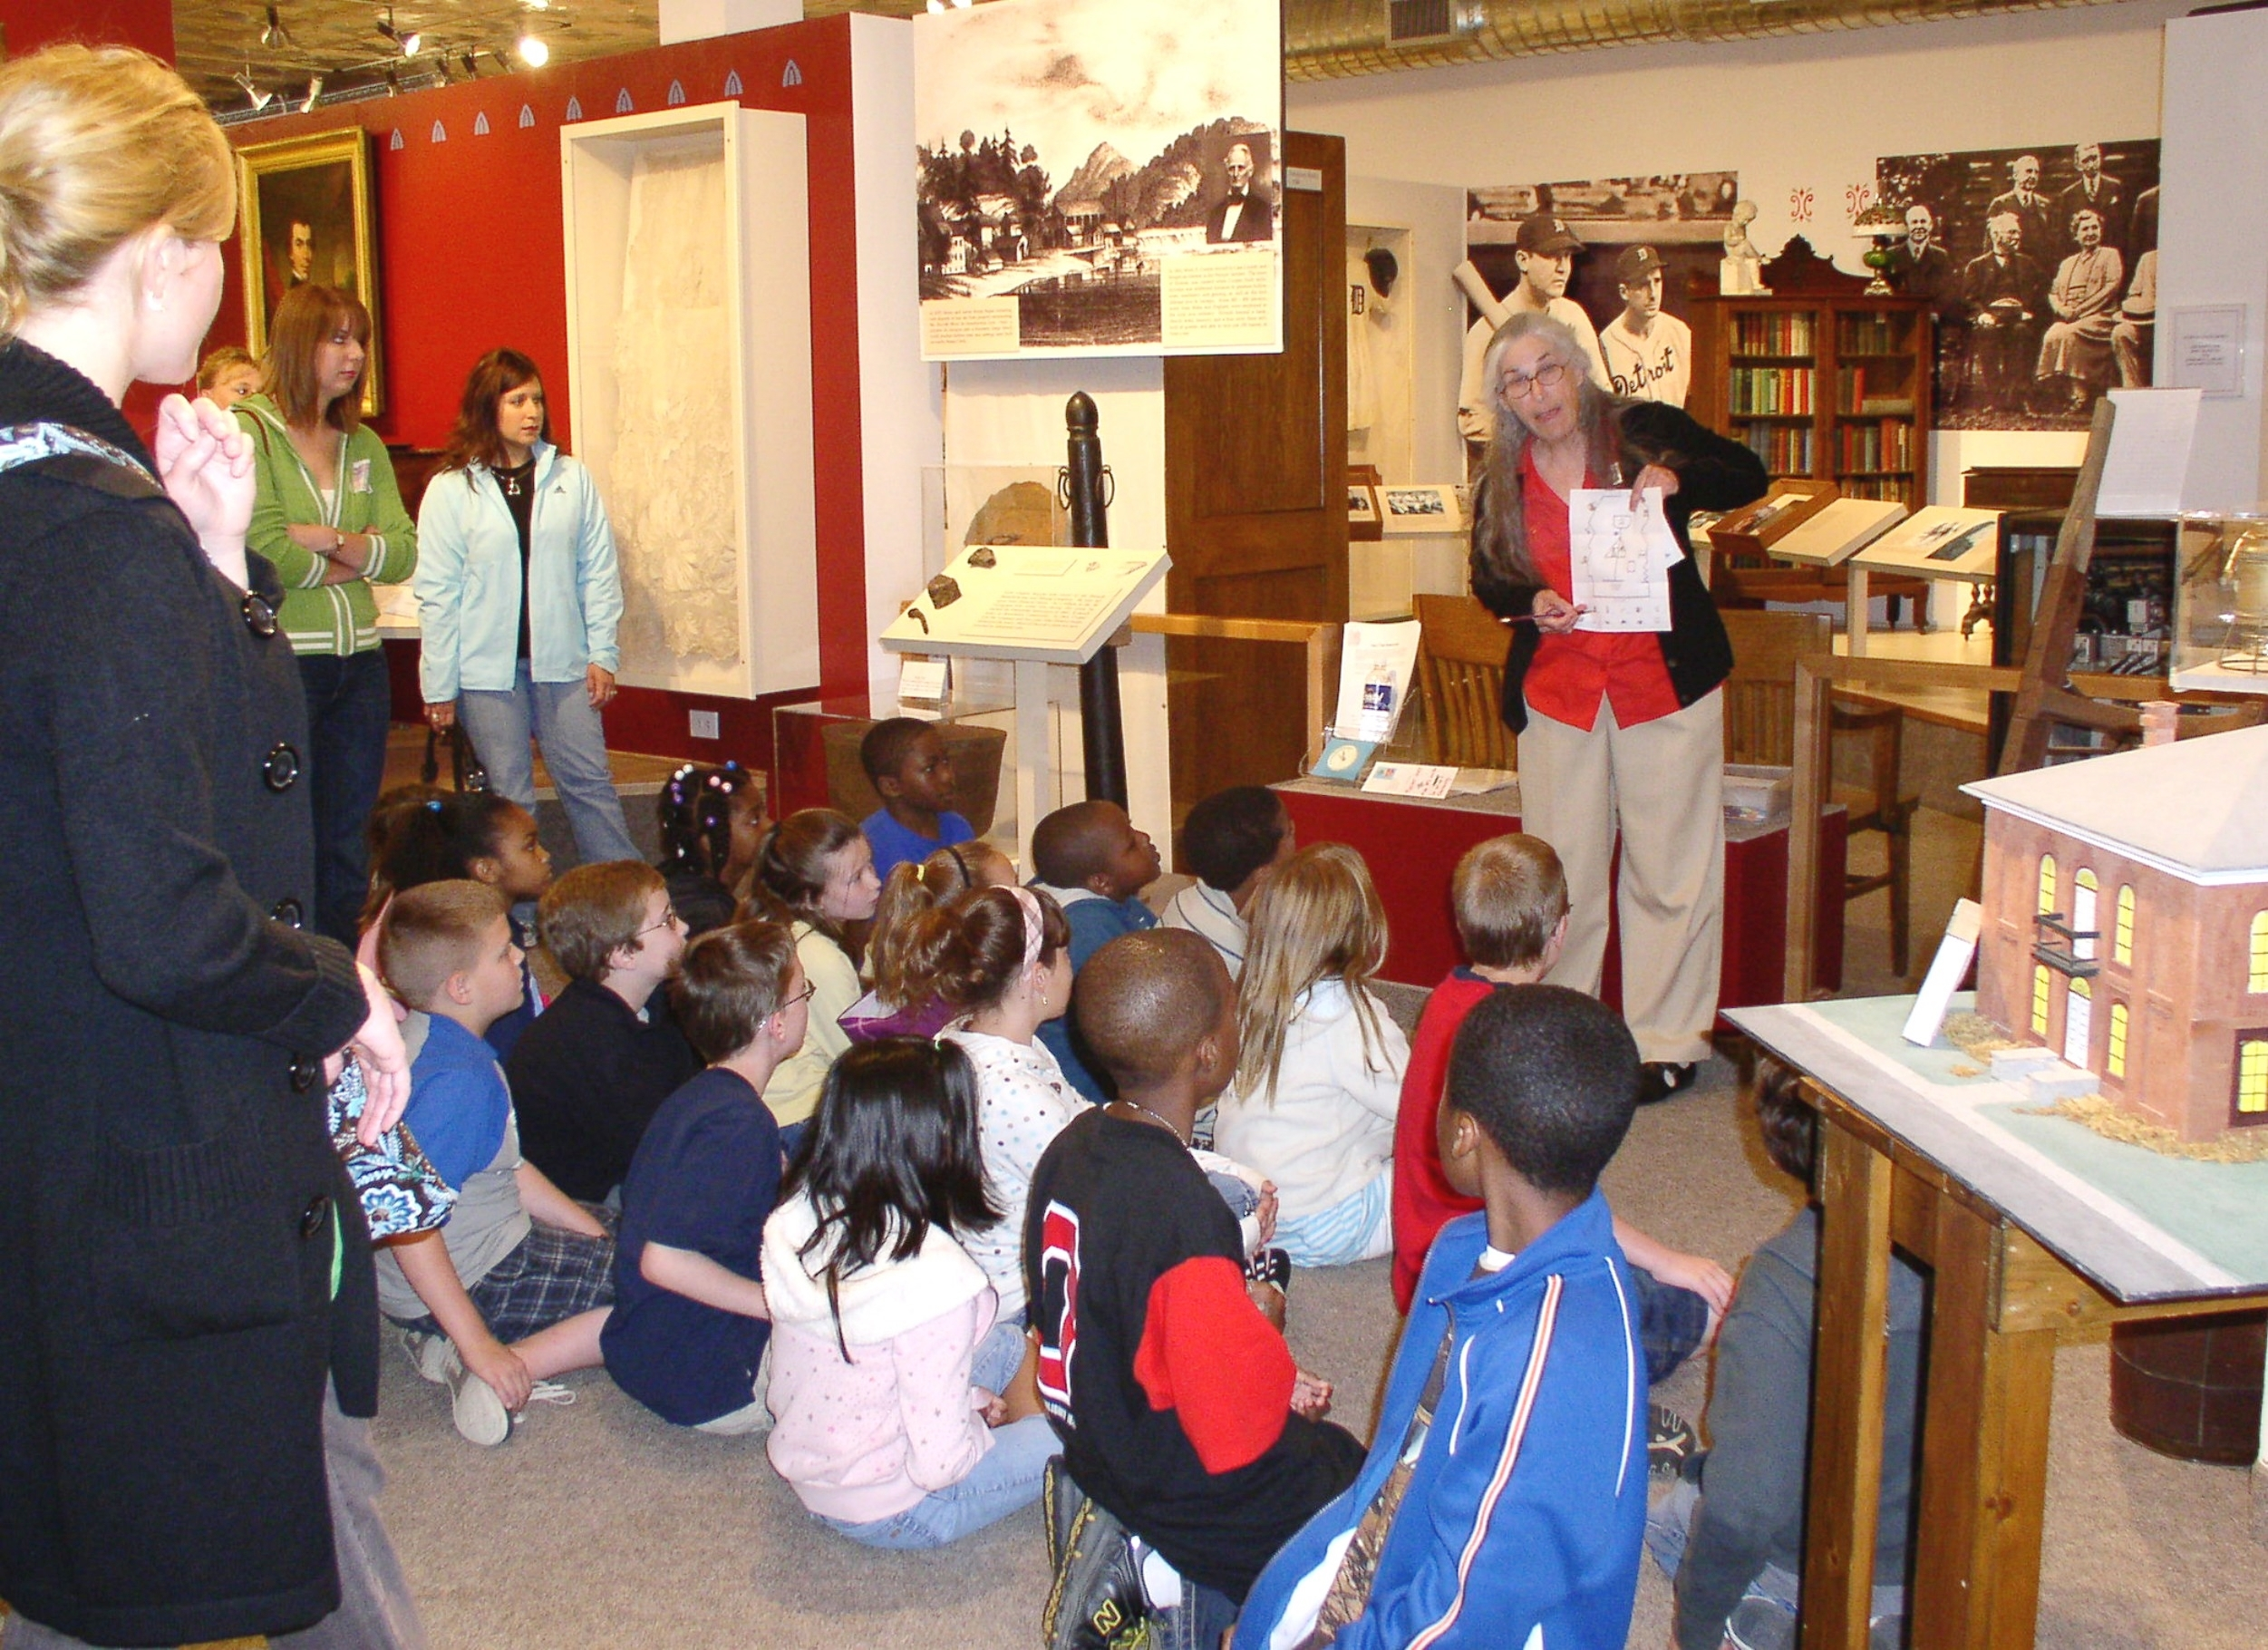 Children learn about local history at the Barstow History Museum in Cartersville, Georgia. The museum includes exhibits on the area's Native American heritage, the Civil War in Bartow County, the plantation era, industrial growth, and famous local individuals.